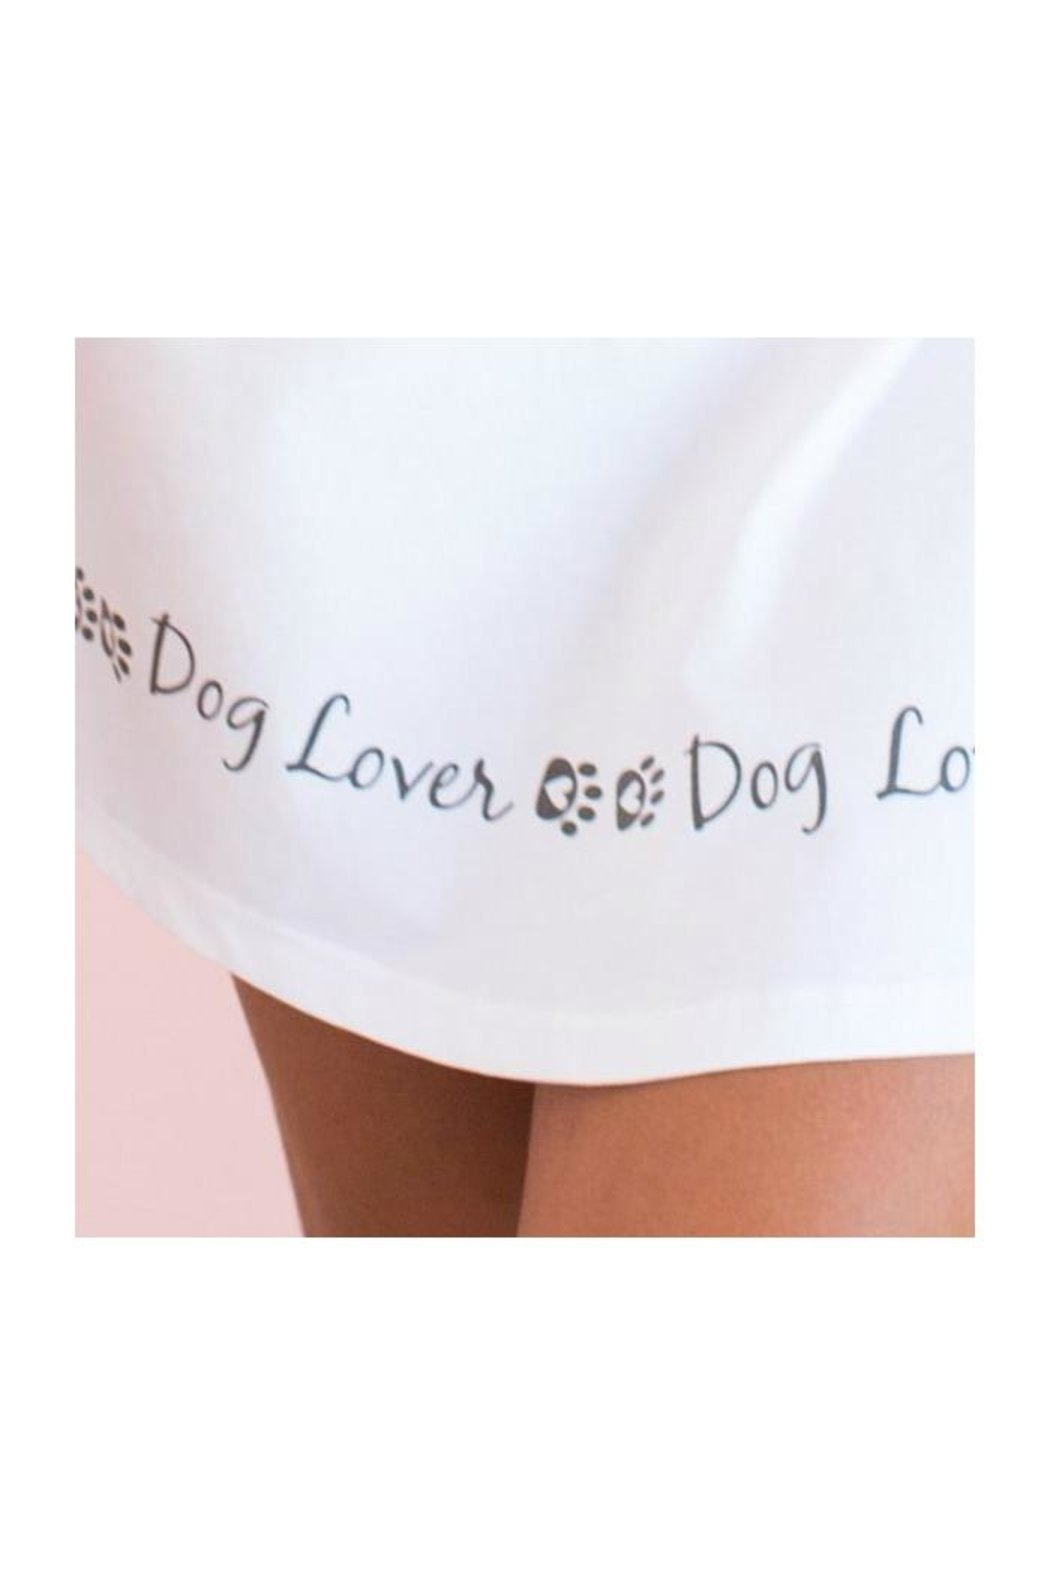 DOG LOVER - SLEEVELESS SLEEP SHIRT - Molly's! A Chic and Unique Boutique